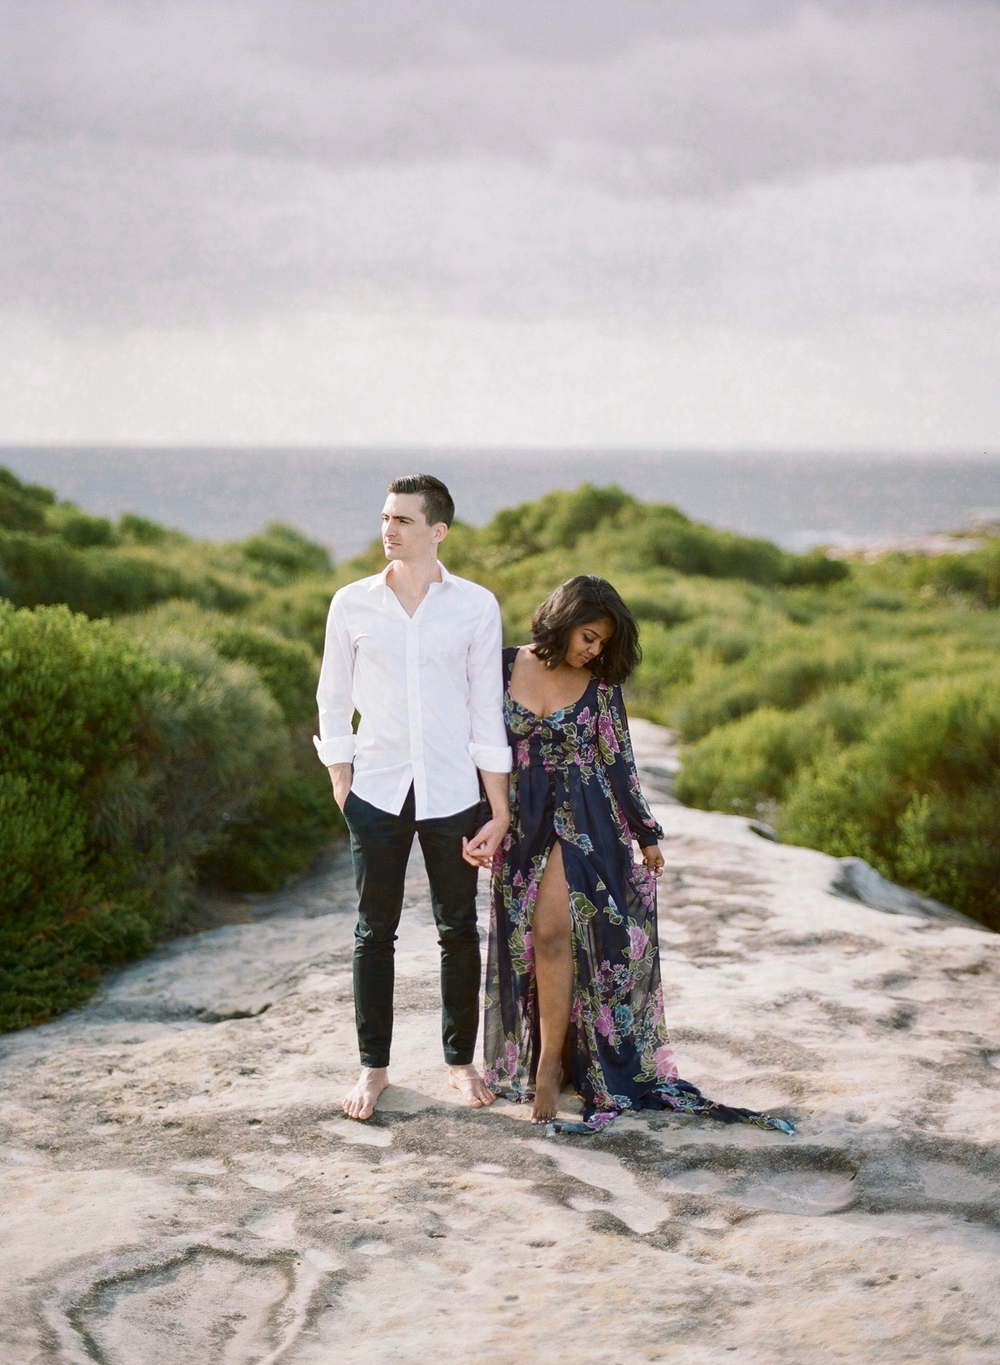 Coastal Sydney couples session by Mr Edwards Photography_0737_1110.jpg